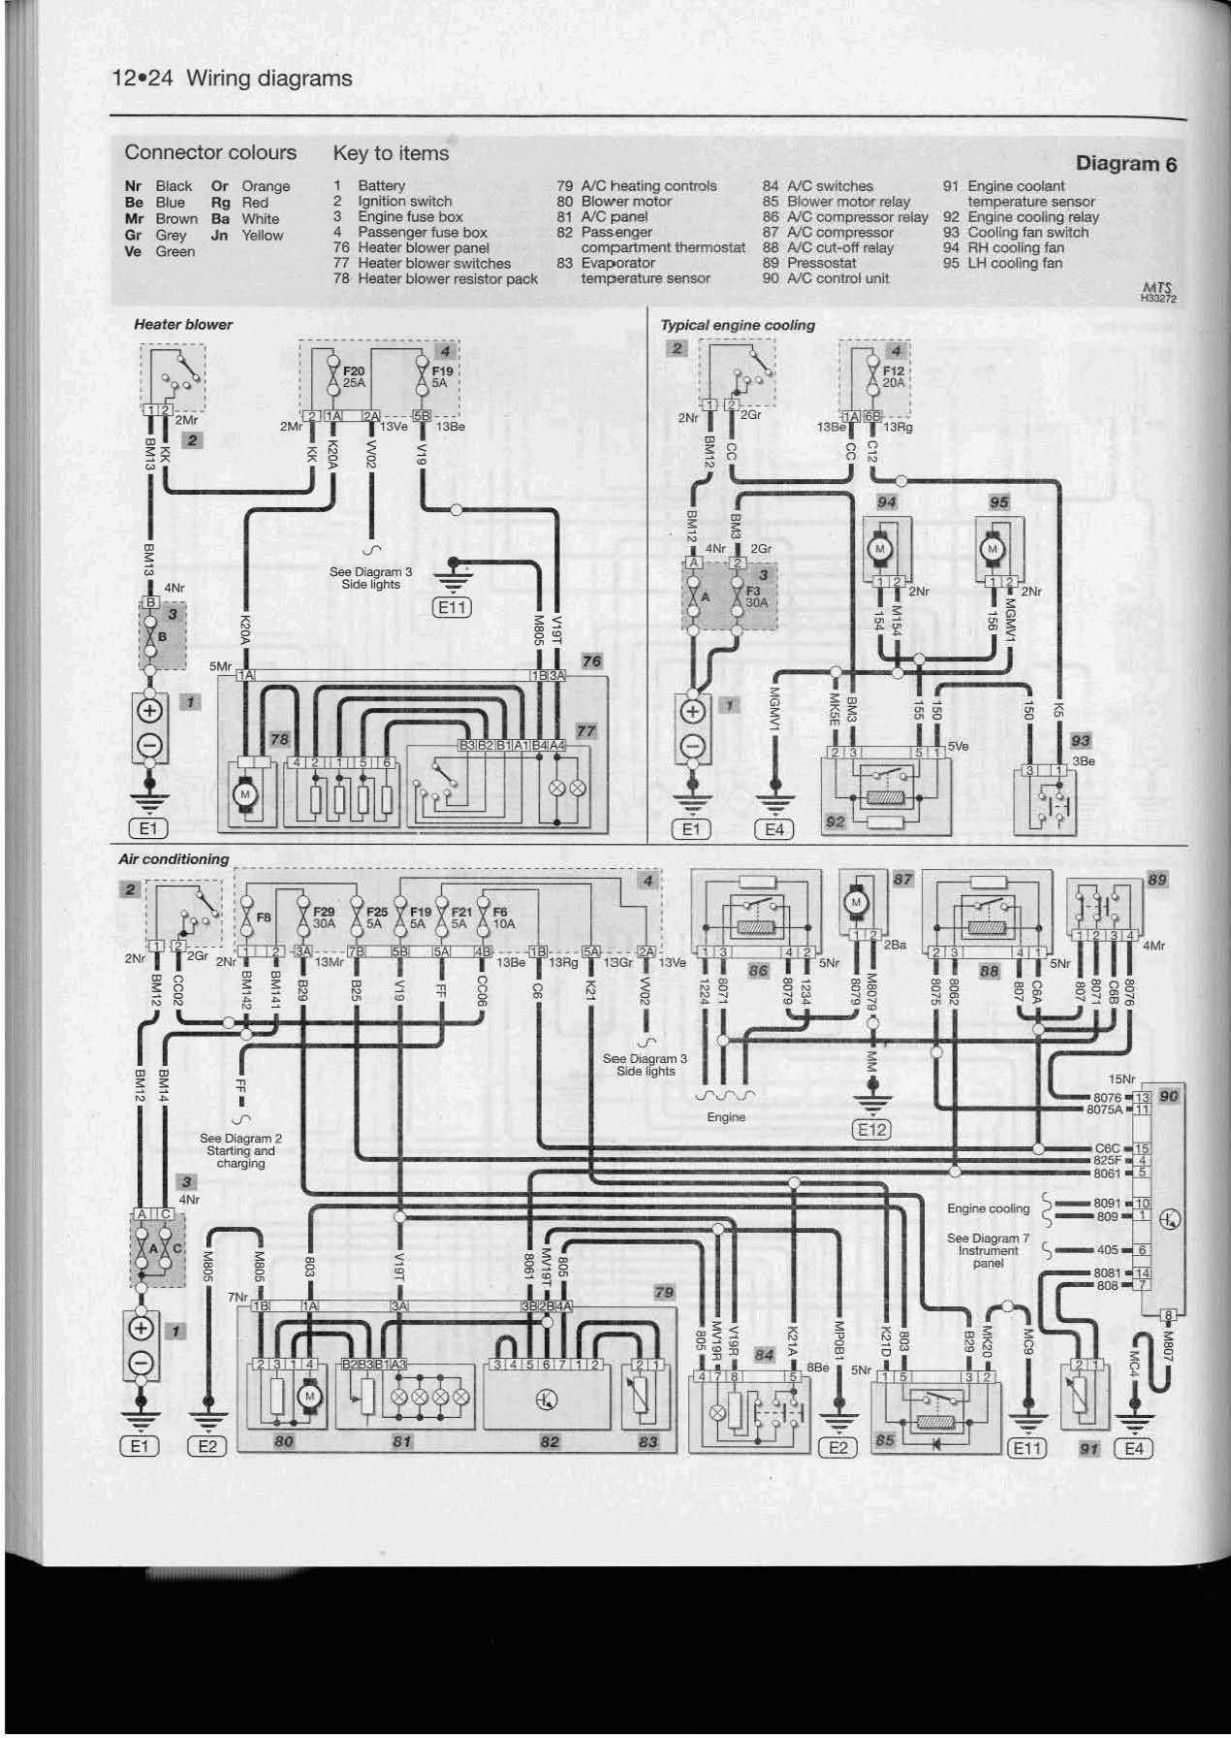 Peugeot 8 8 Hdi Engine Diagram Manual